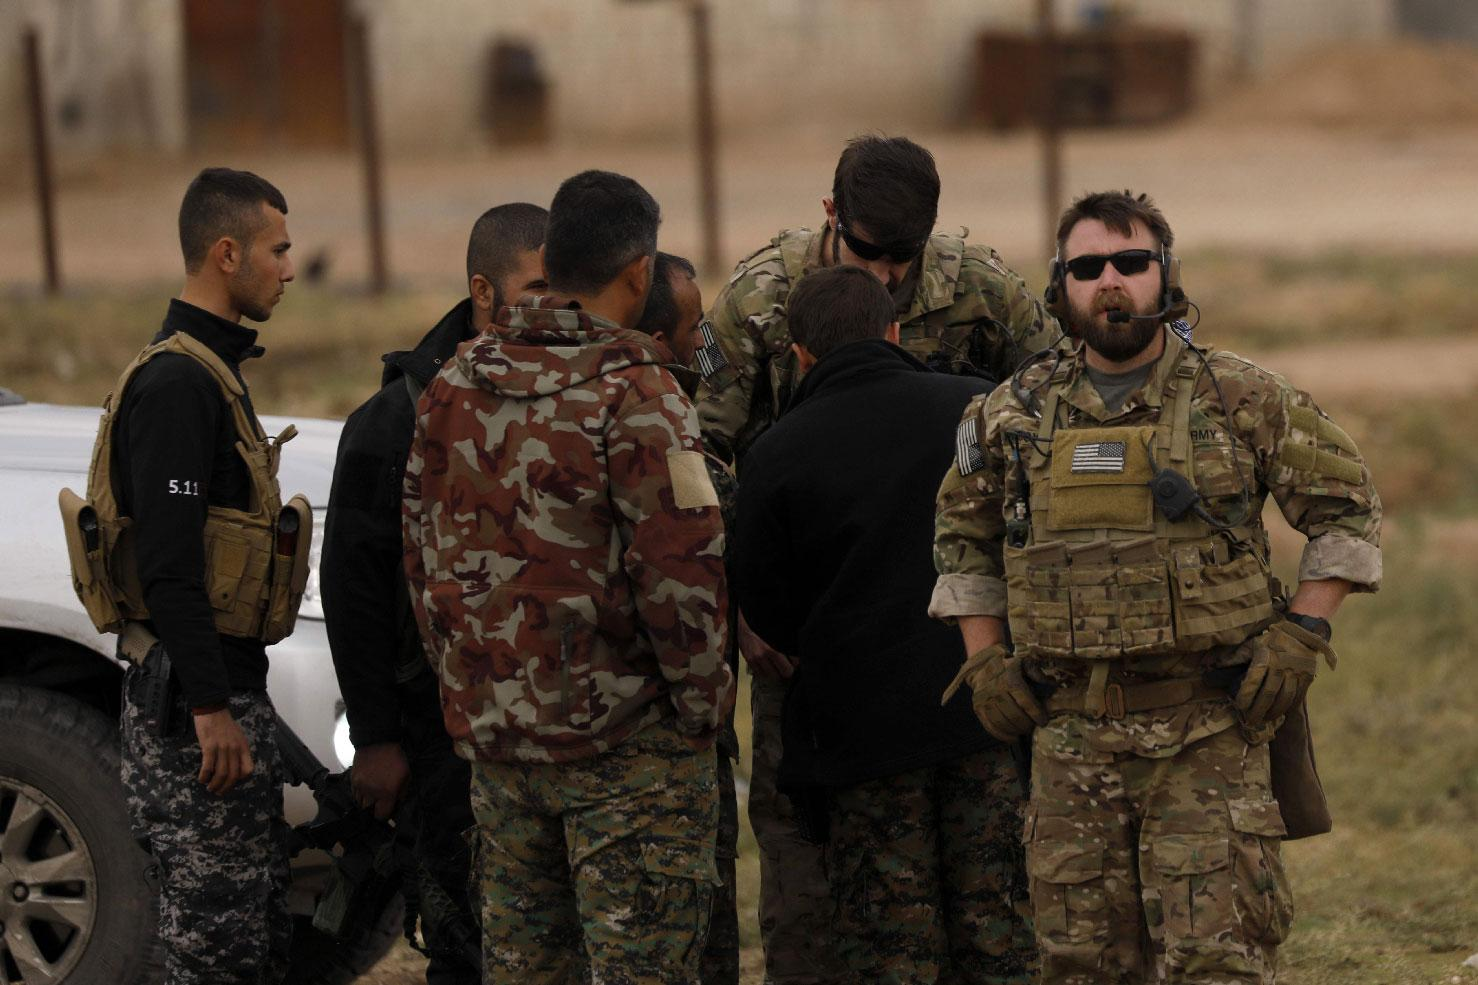 US forces and members of the Syrian Democratic Forces (SDF) patrol the Kurdish-held town of Al-Darbasiyah in northeastern Syria bordering Turkey on November 4, 2018.